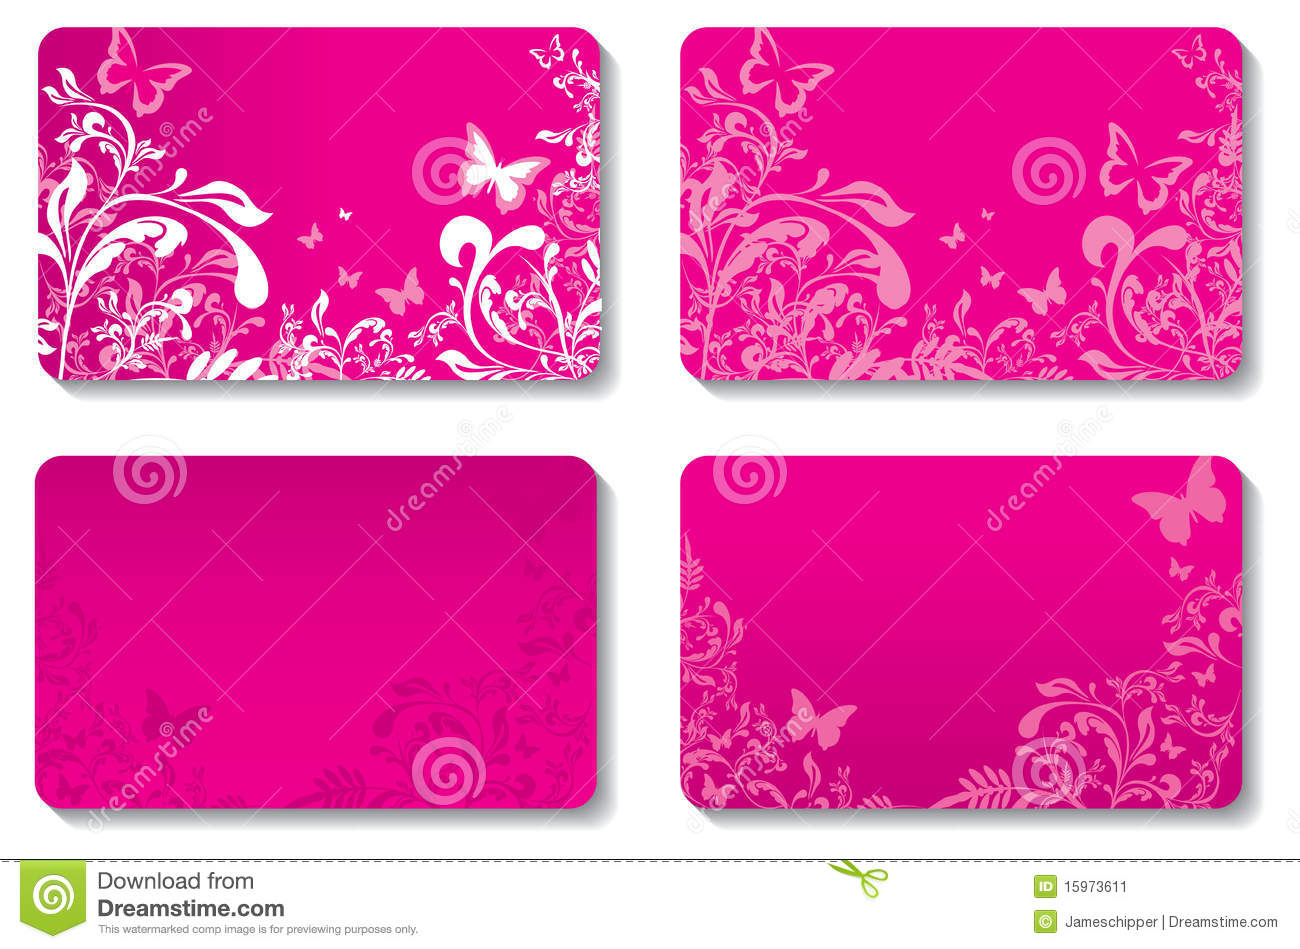 Floral business cards stock vector. Image of design, business ...